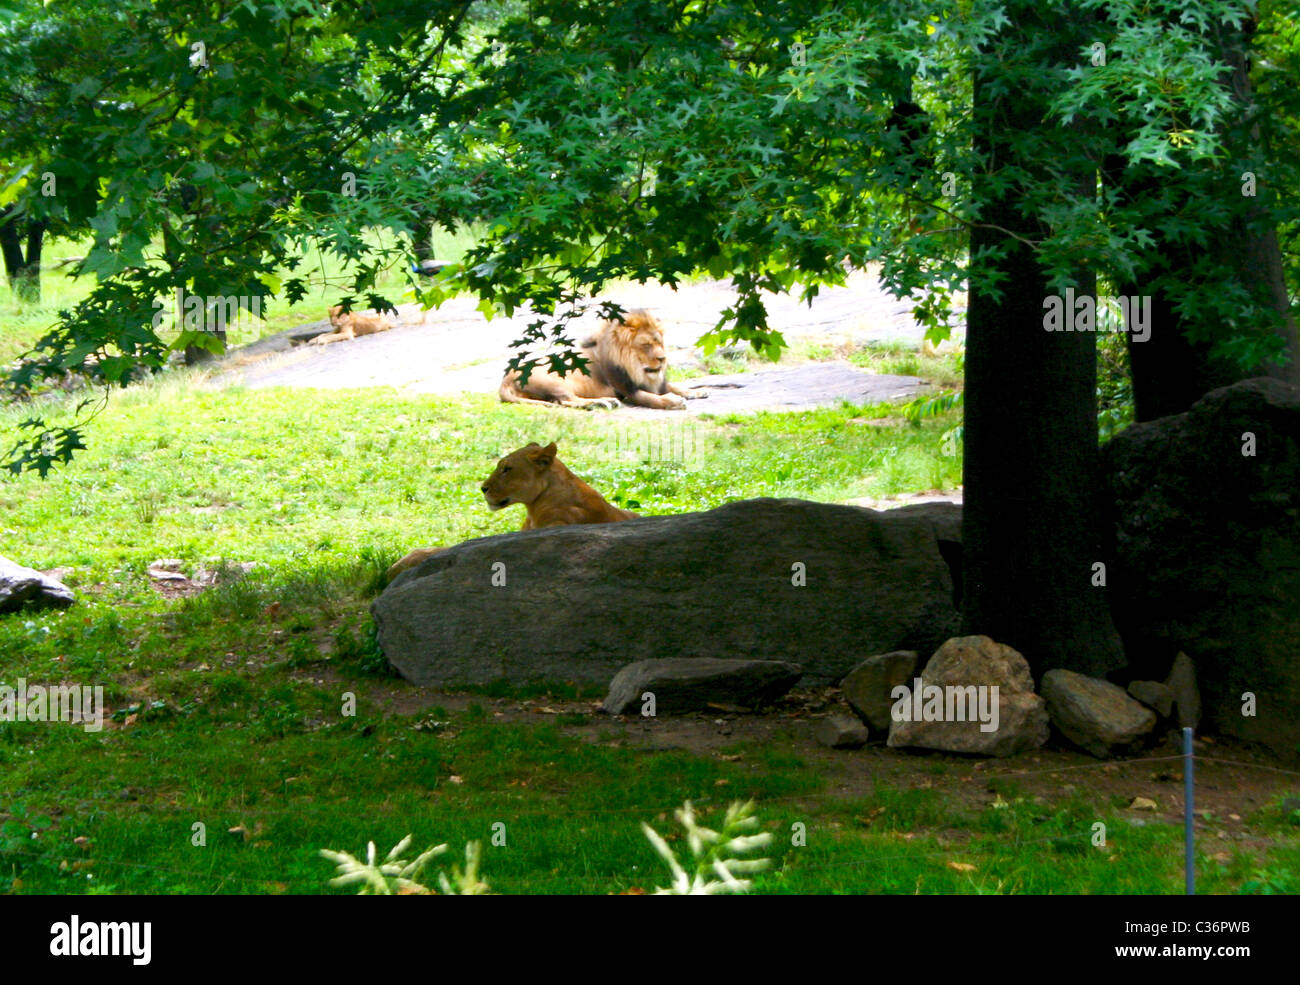 Lioness and Lion relaxing at the Bronx Zoo in New York City - Stock Image